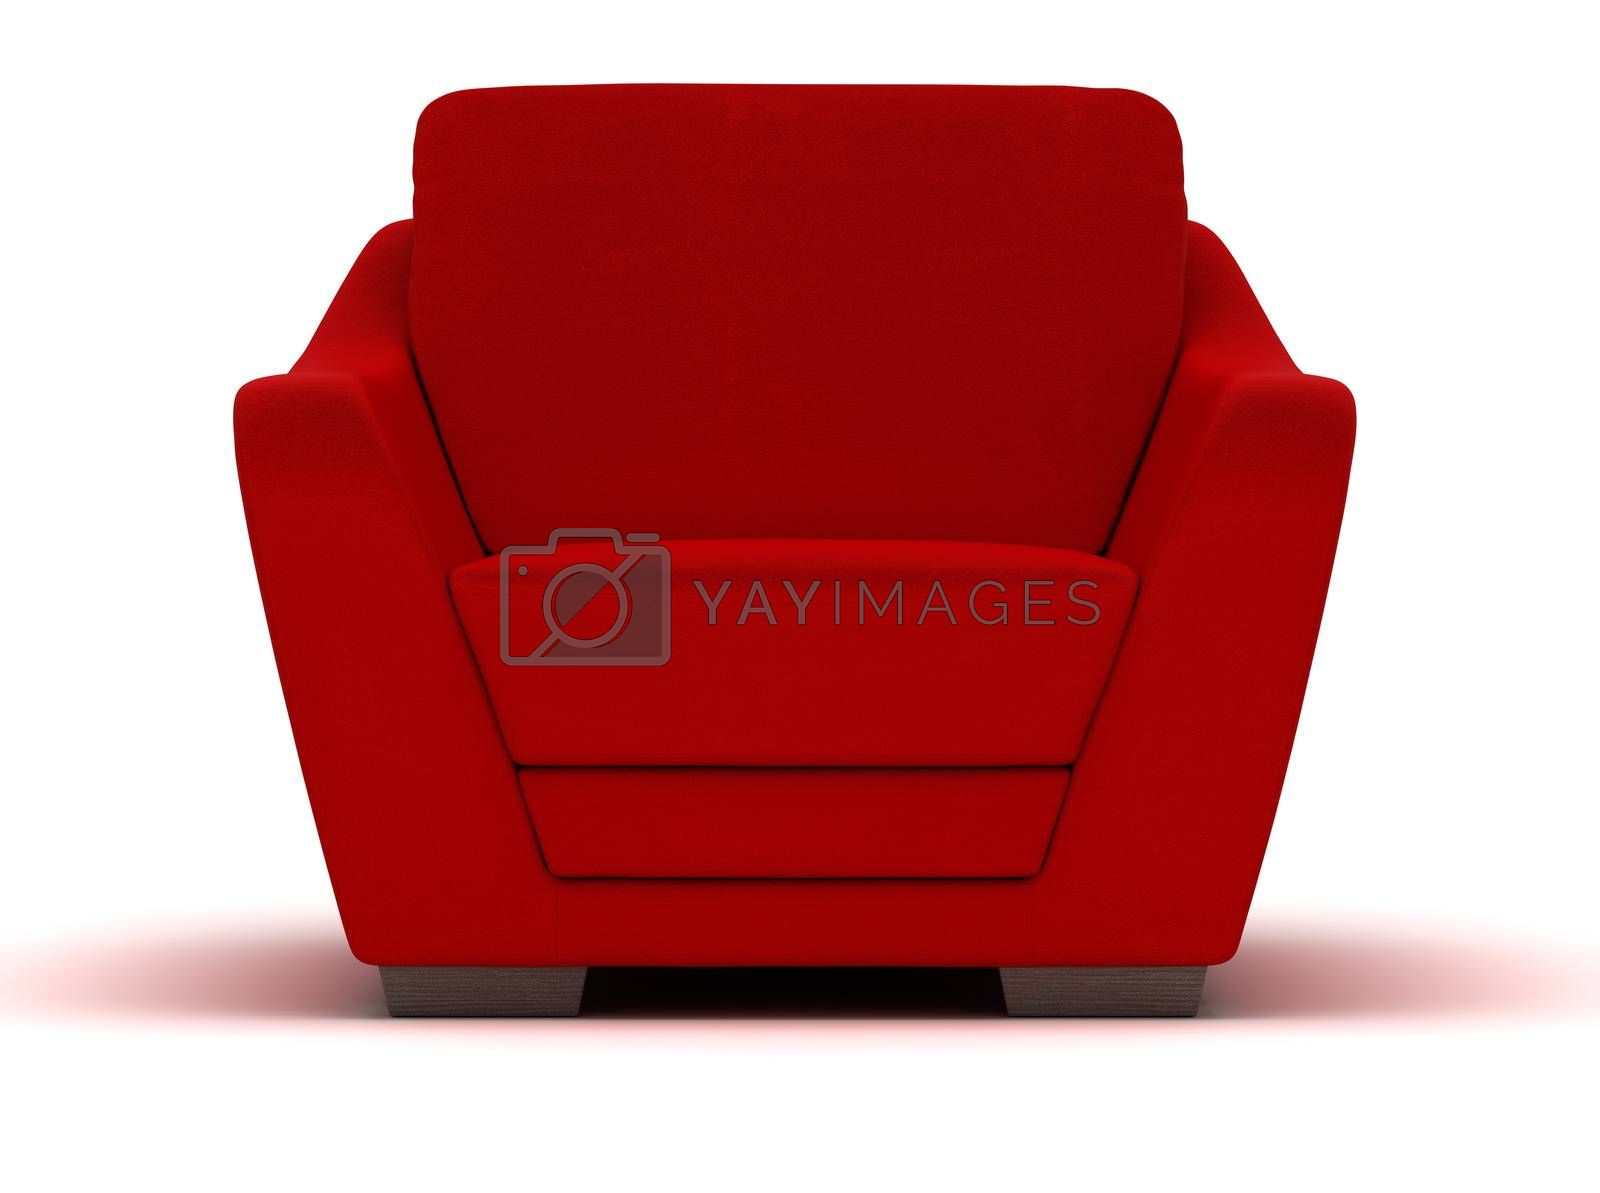 Royalty free image of Red Leather Armchair by selensergen